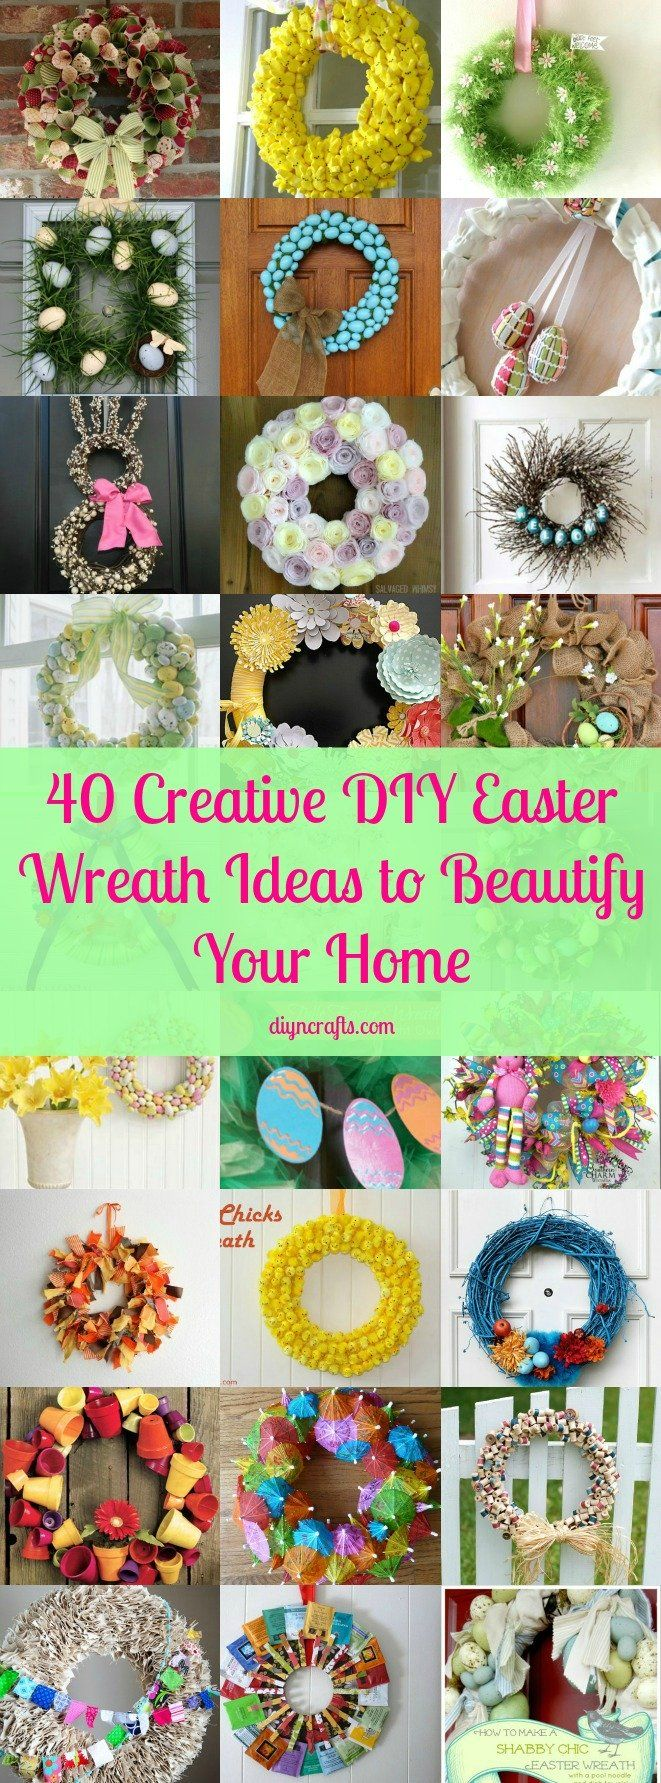 40 Creative DIY Easter Wreath Ideas to Beautify Your Home \u2013 DIY & Crafts